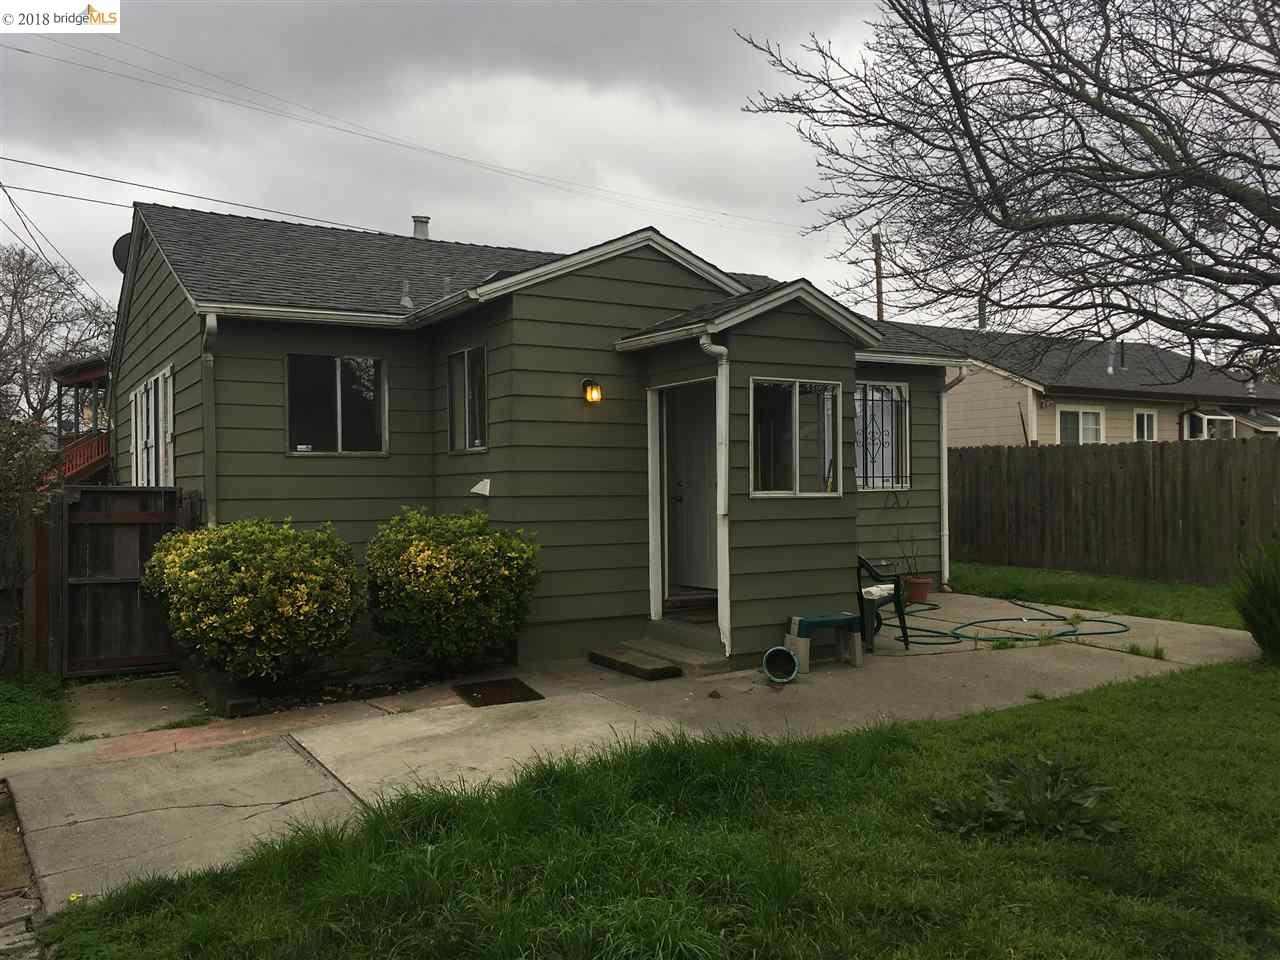 25TH ST, RICHMOND, CA 94806